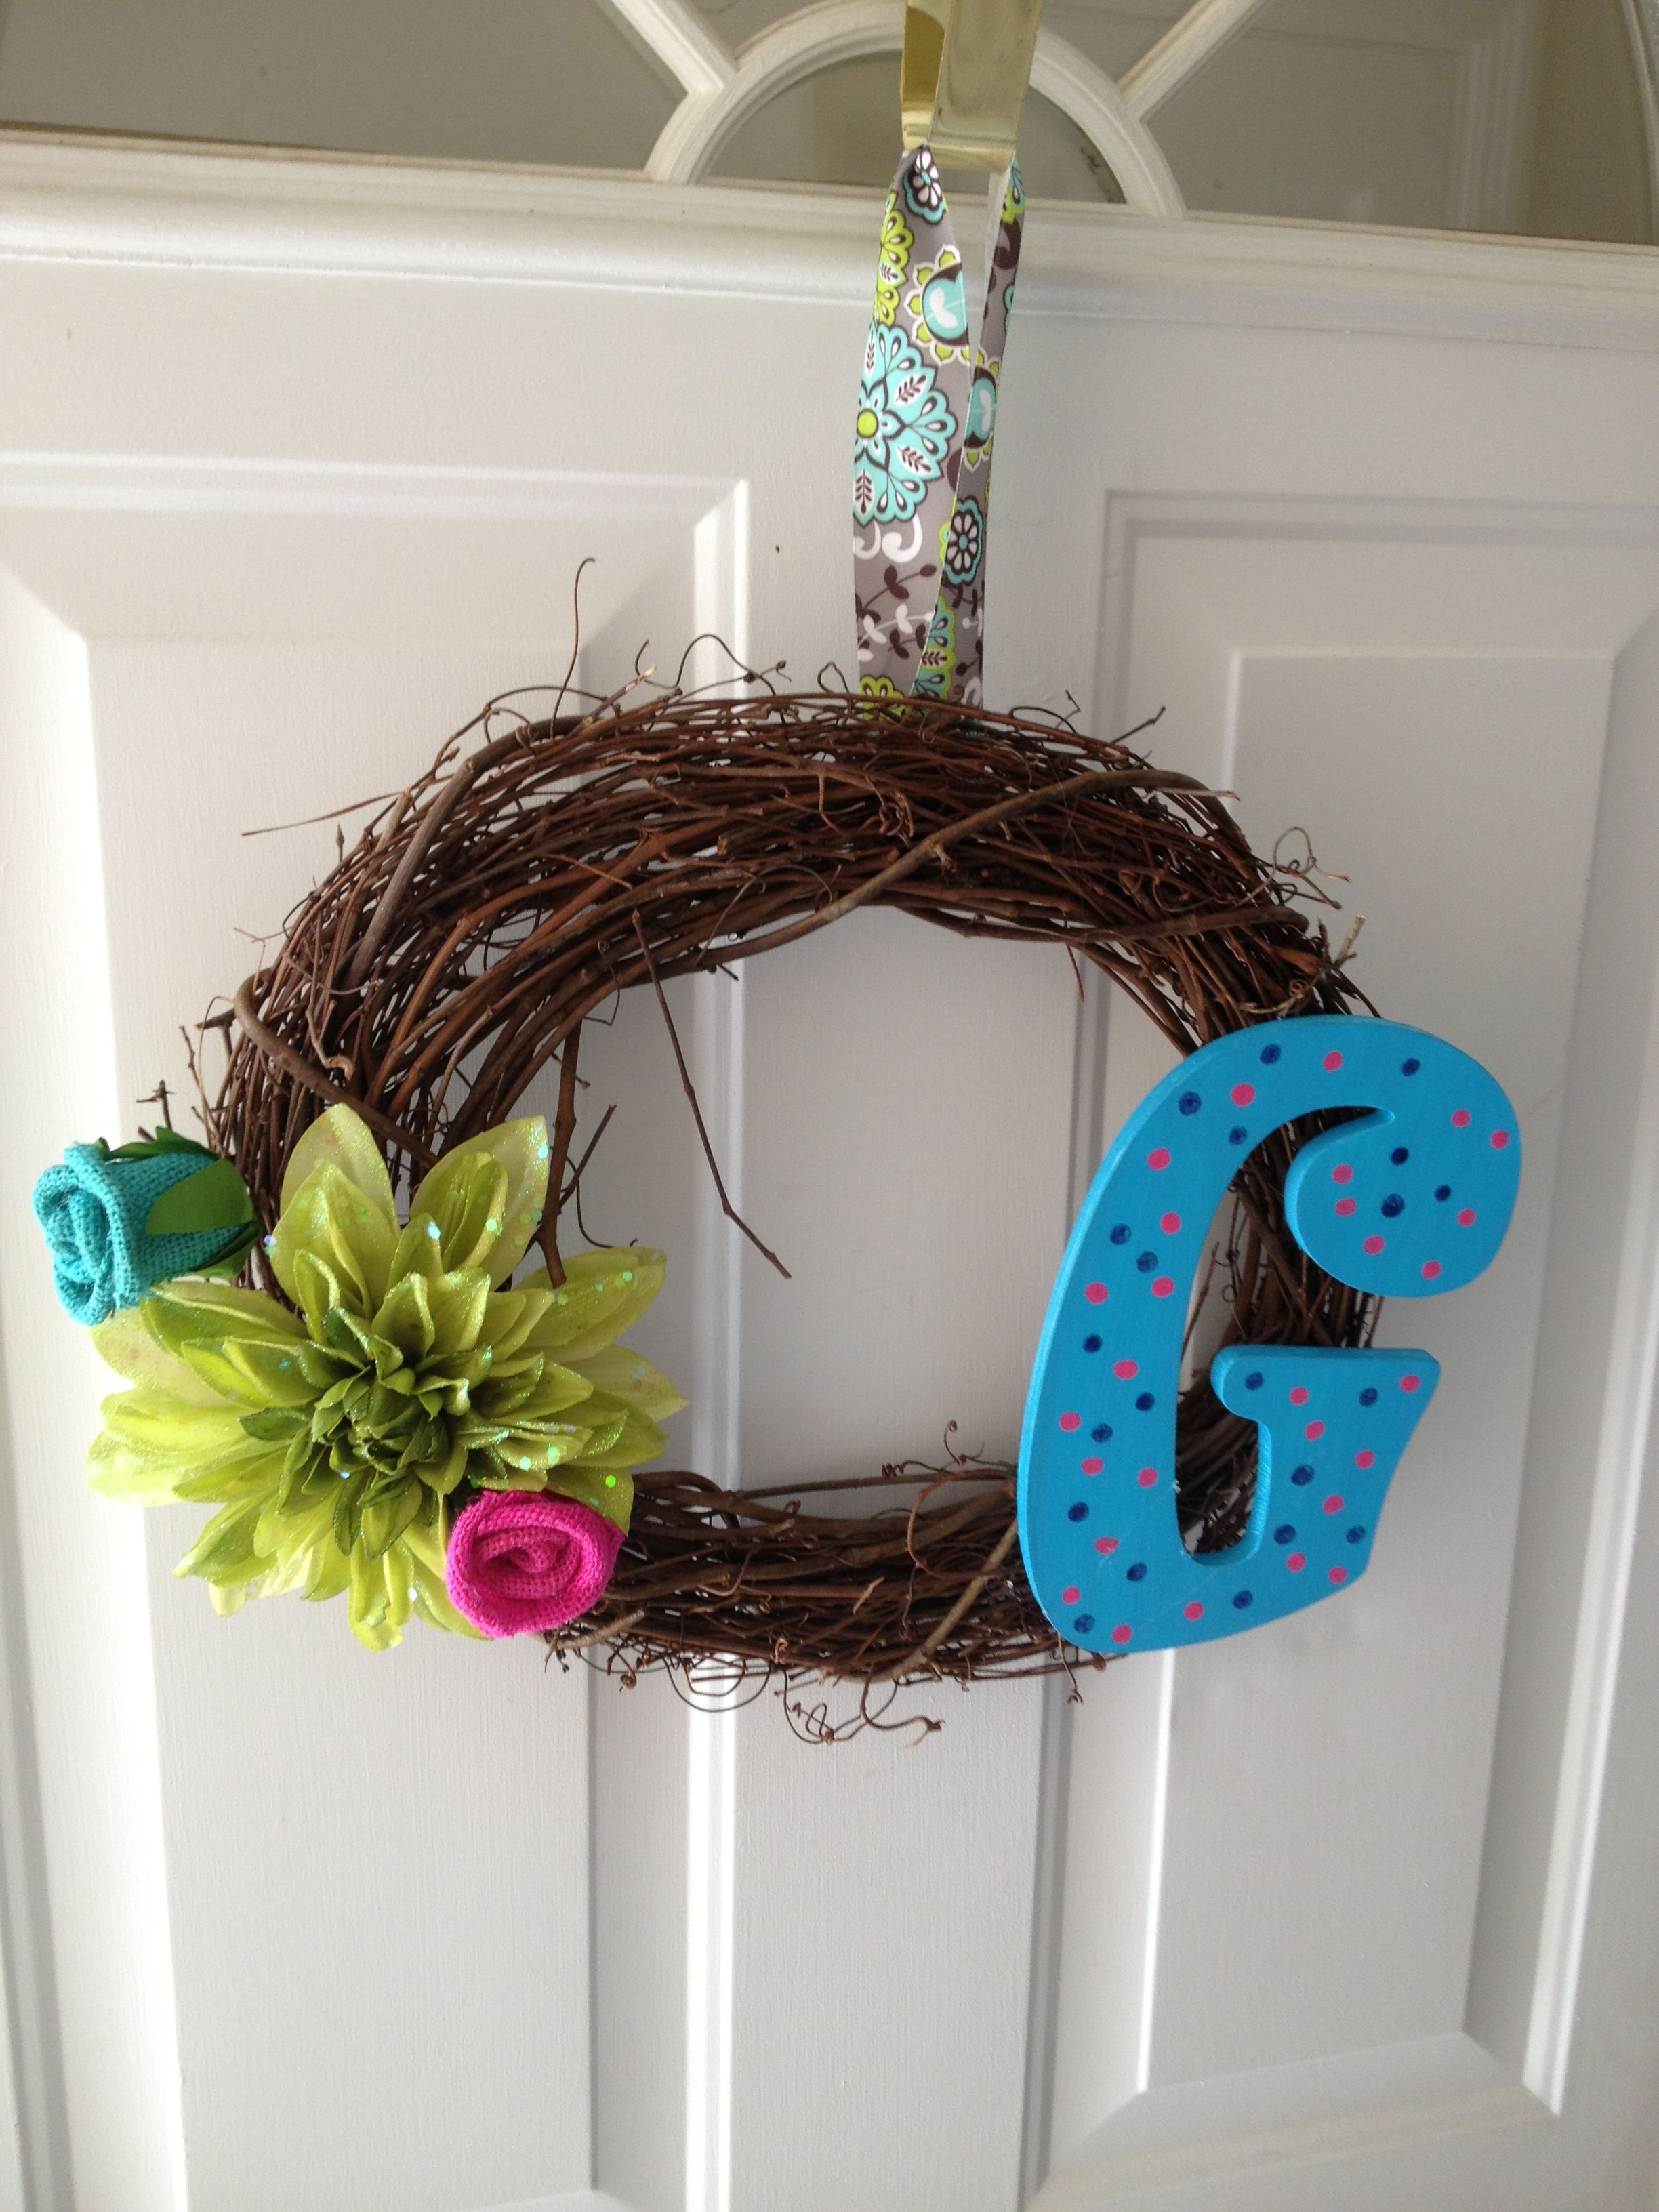 Buy 2 twine wreath from ur local craft store all items